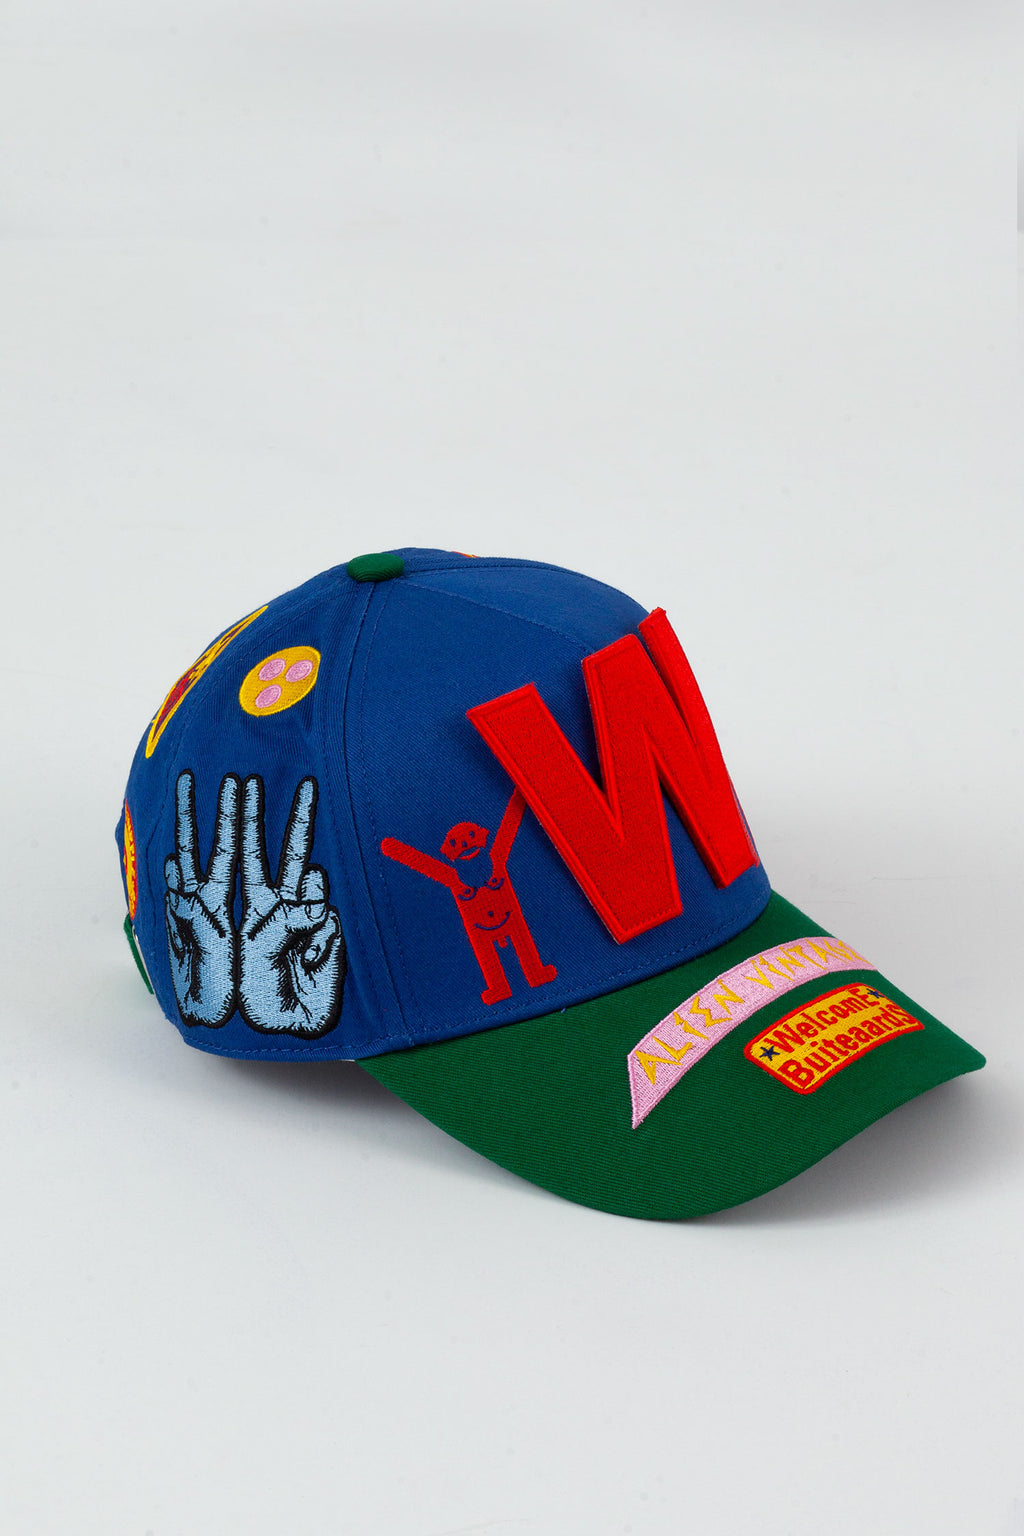 WitblitZ Cap - Blue/Green